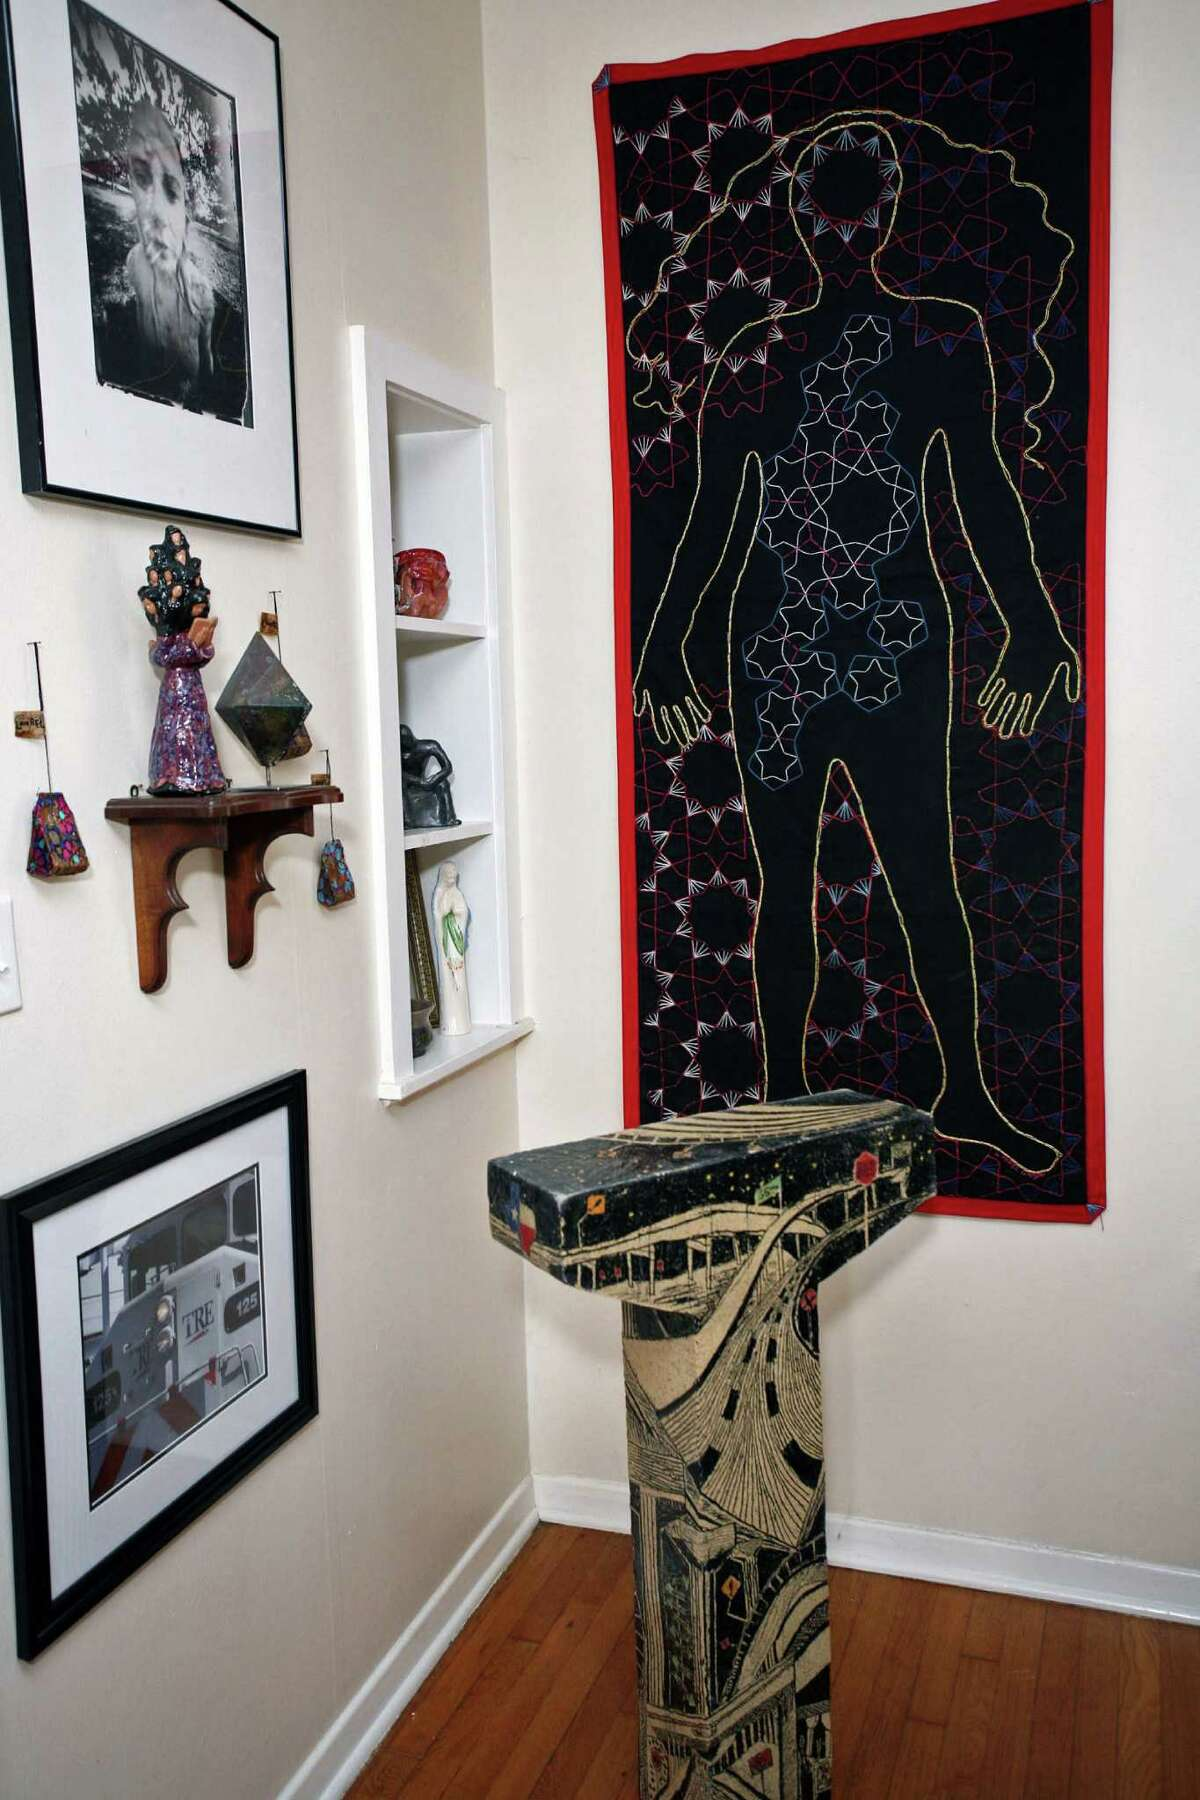 Ceramics and embroidered artwork decorate the living room.